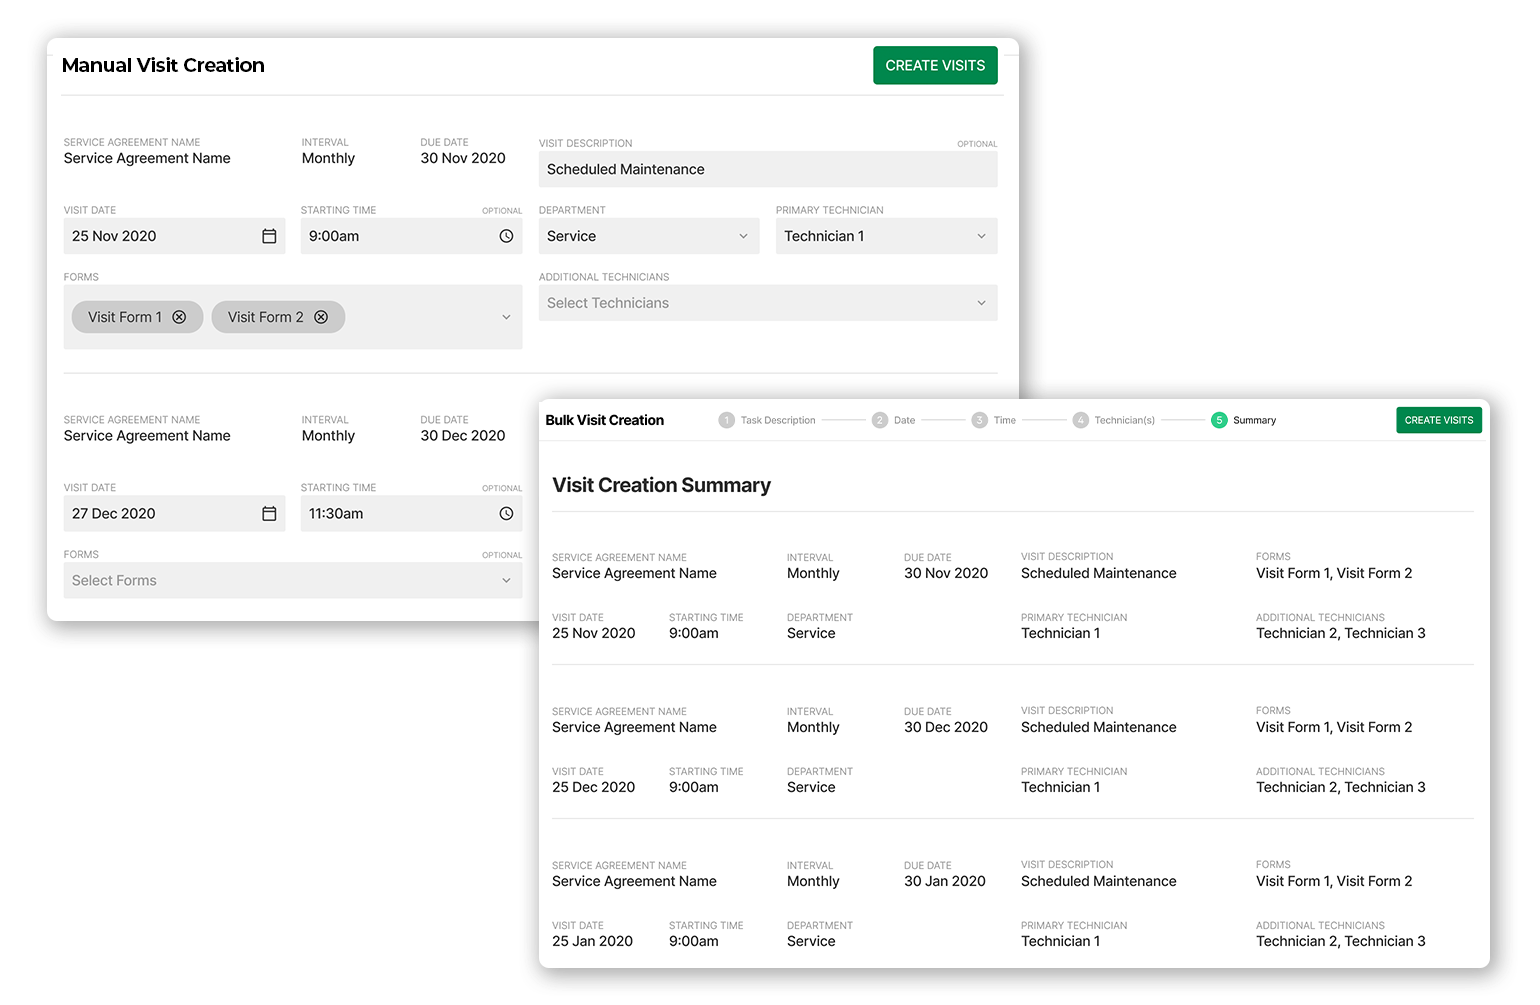 BuildOps Lightning-Speed Scheduling: At a glance, you can see when all visits are due, ensure they're scheduled to be done on time, and even bulk schedule in one click. No more letting service agreements fall through the cracks.